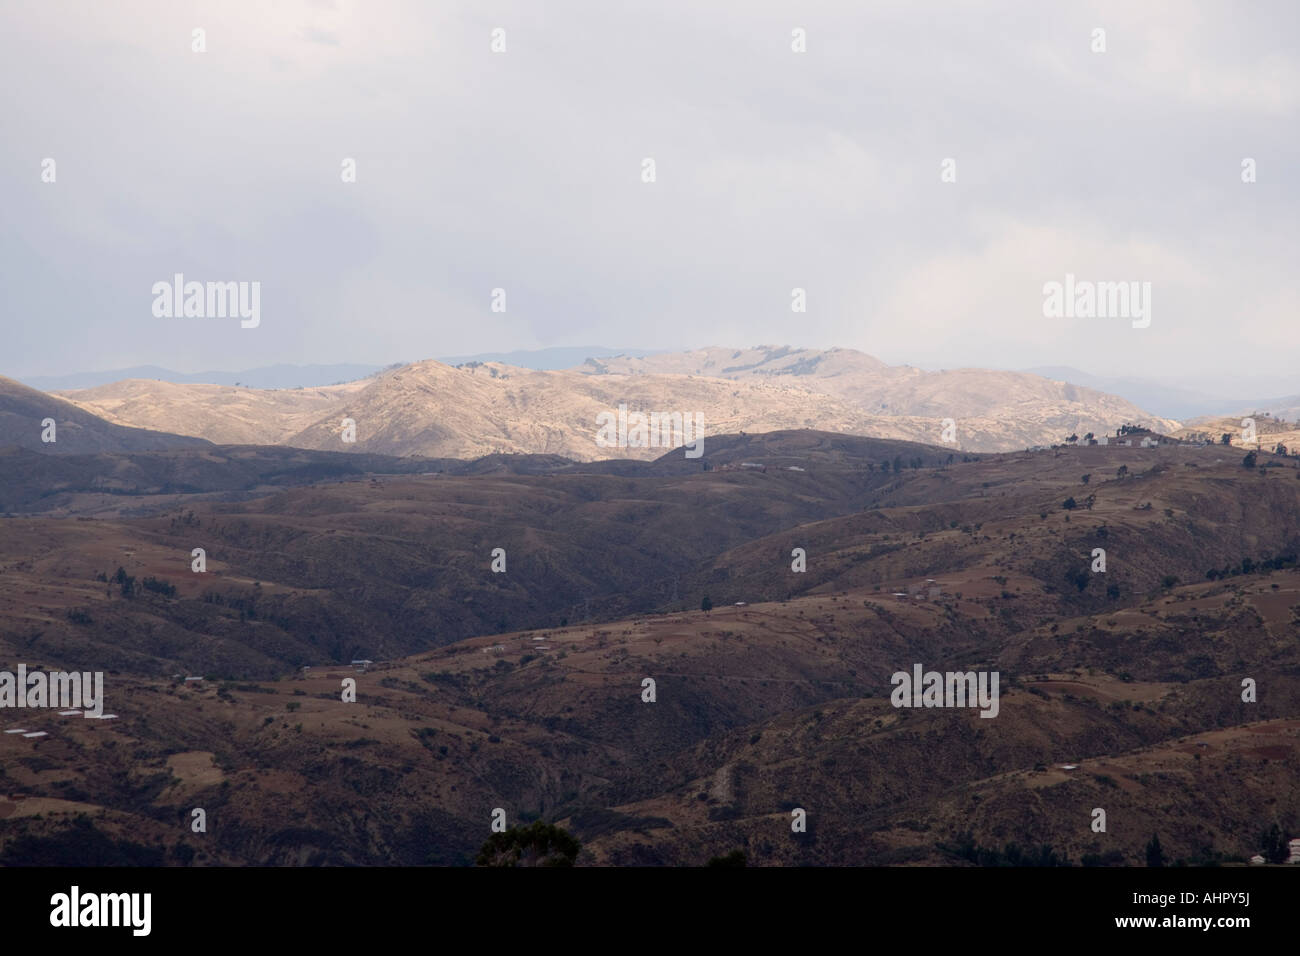 View of the Andes and Sucre from the Parque Cretacico, the Dinosaur park set up to overlook the Dinosaur footprints, - Stock Image